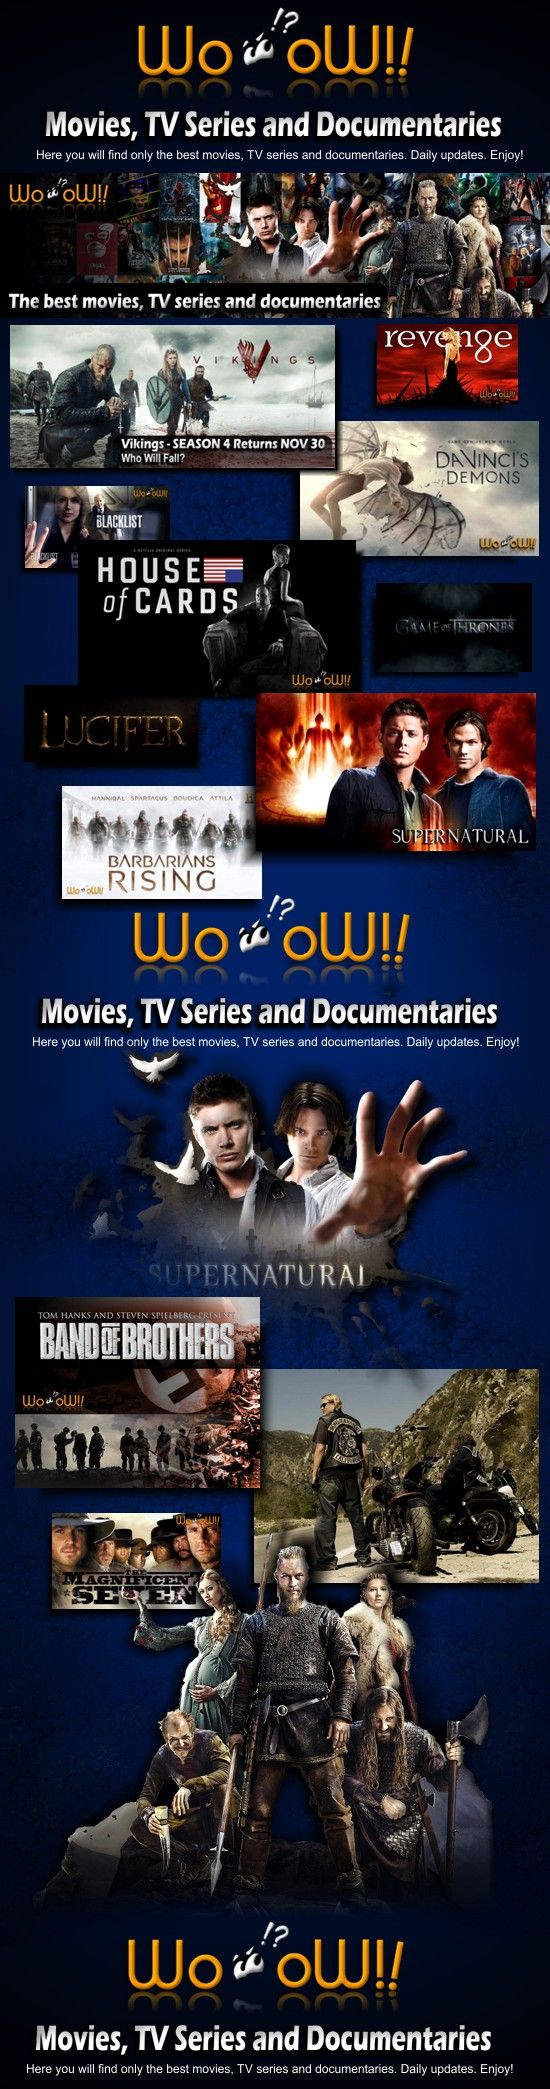 Movies and TV Series - WoOoW!! | Here you will find only the best movies, TV series and documentaries. Daily updates. Enjoy! Visit: https://moviestvserieshm.wordpress.com/ +++ #movies #TVseries #news #marketing #WoOoW